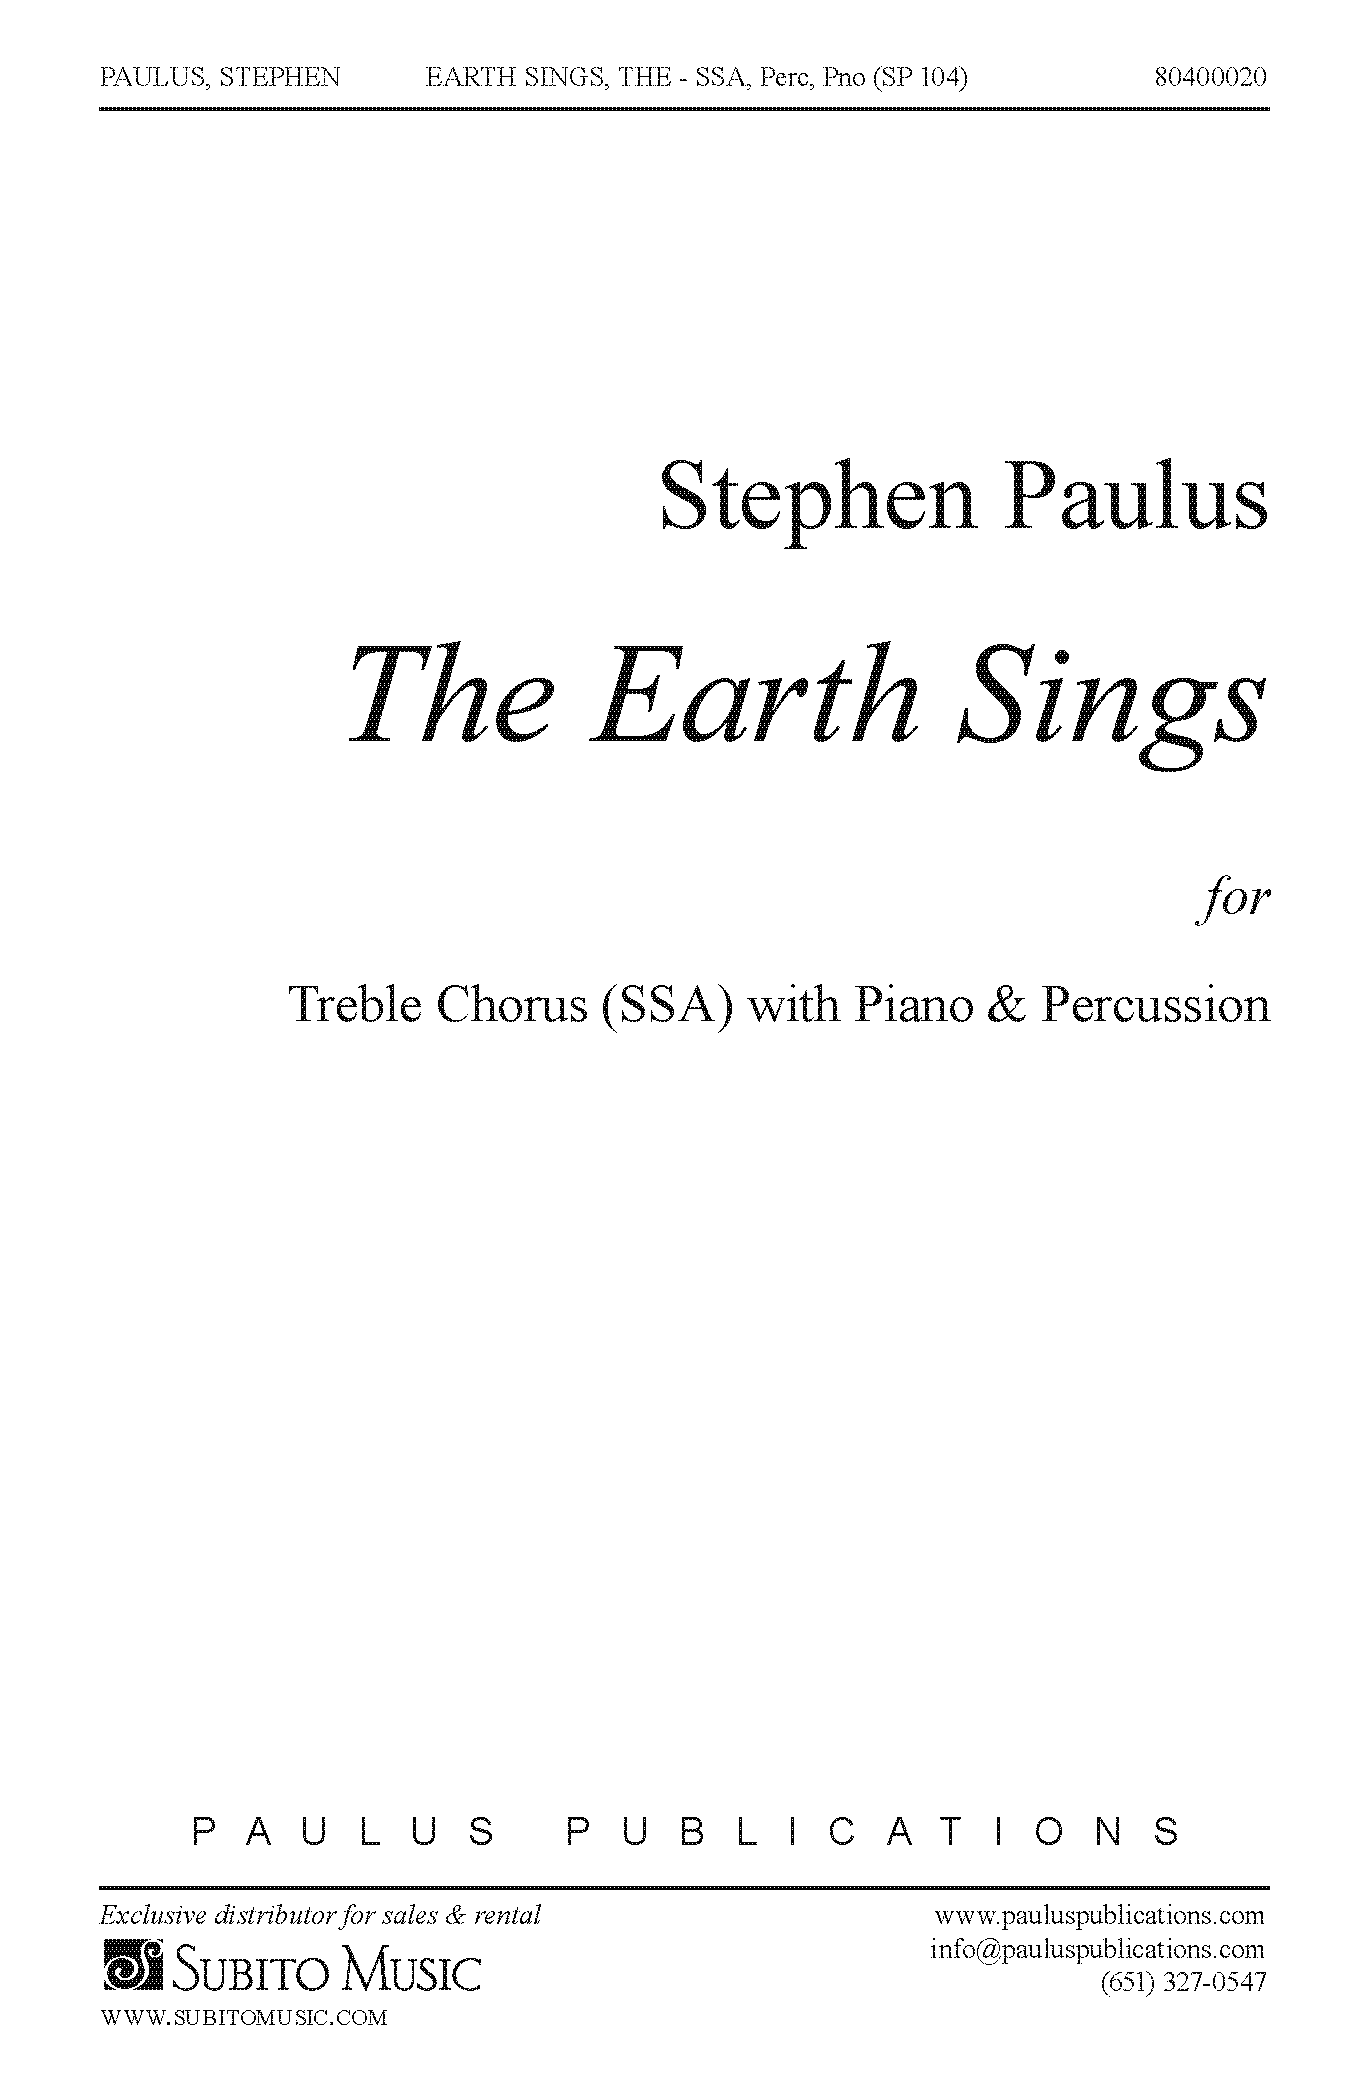 The Earth Sings - Percussion Part for SSAA Chorus, Piano & Hand Percussion